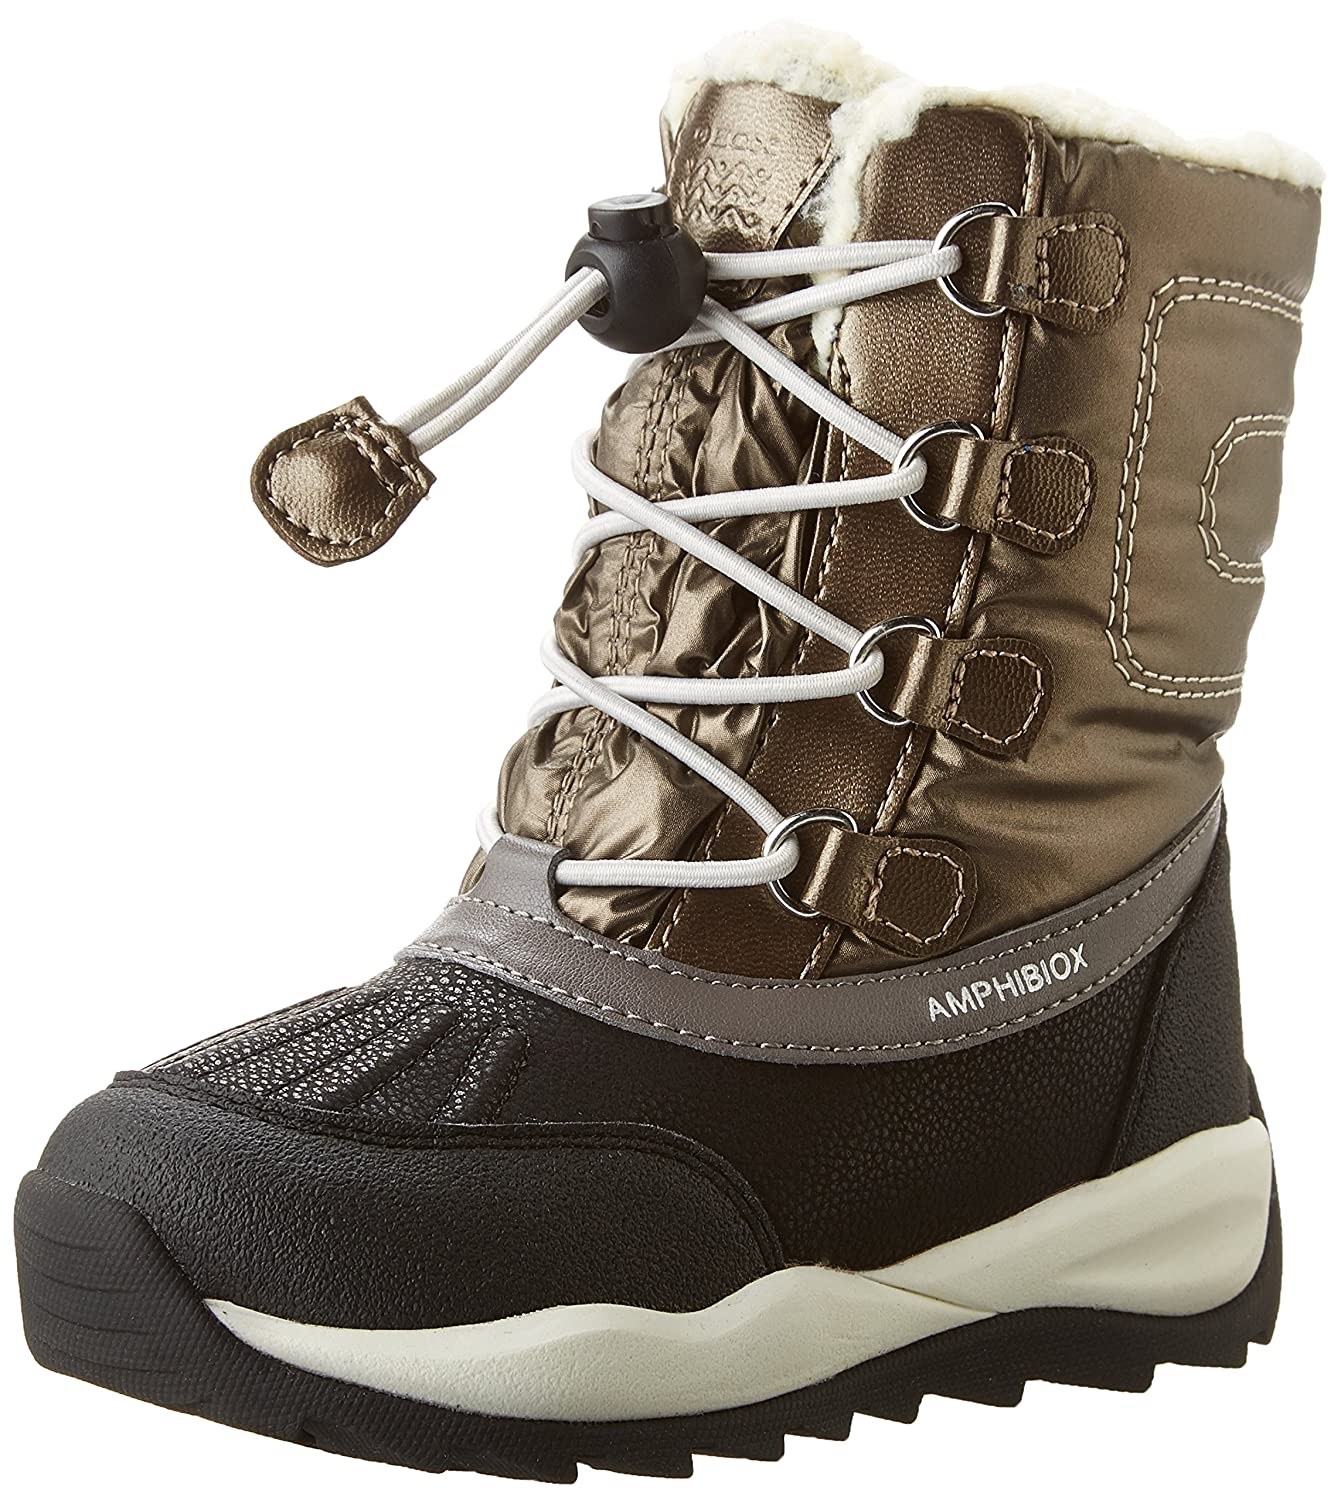 Geox J642BE0FU50 6439 - J Orizont B ABX E - ABX - Bottes de Neige - Mixte Adulte Doré (Dk Goldc2016) 882708d - automatisms.space